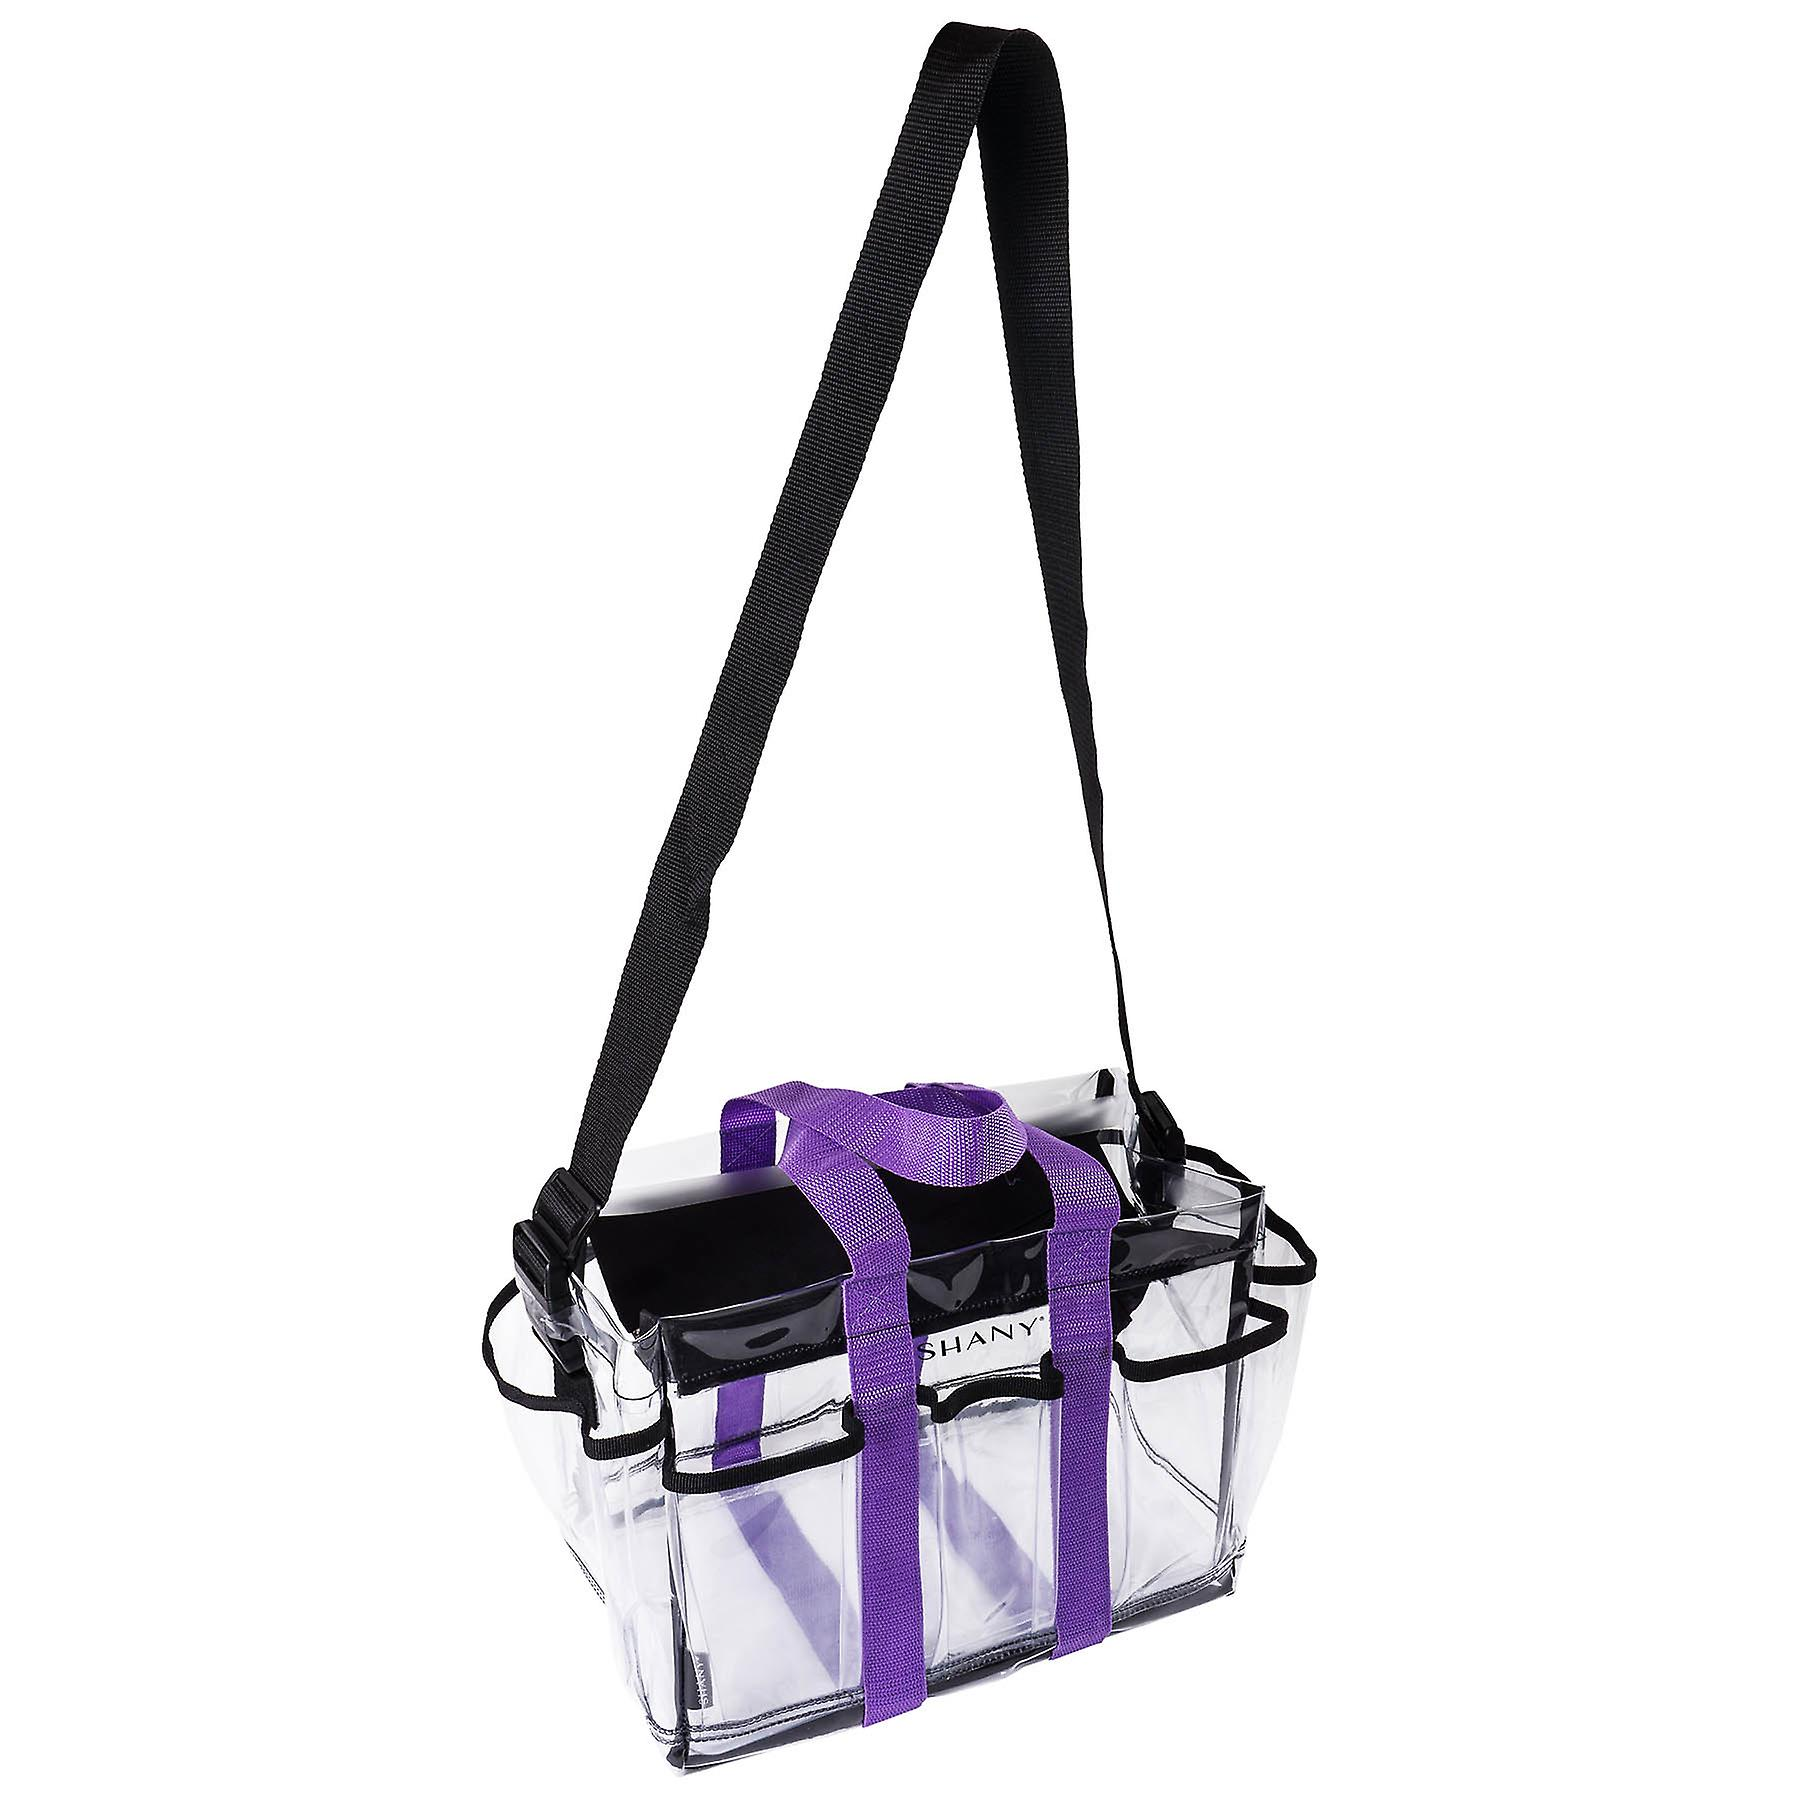 SHANY Clear Makeup Organizer and Travel Caddy – Multiple Pockets - Large, Nontoxic Plastic Tote with Black Shoulder Strap and Purple Handles